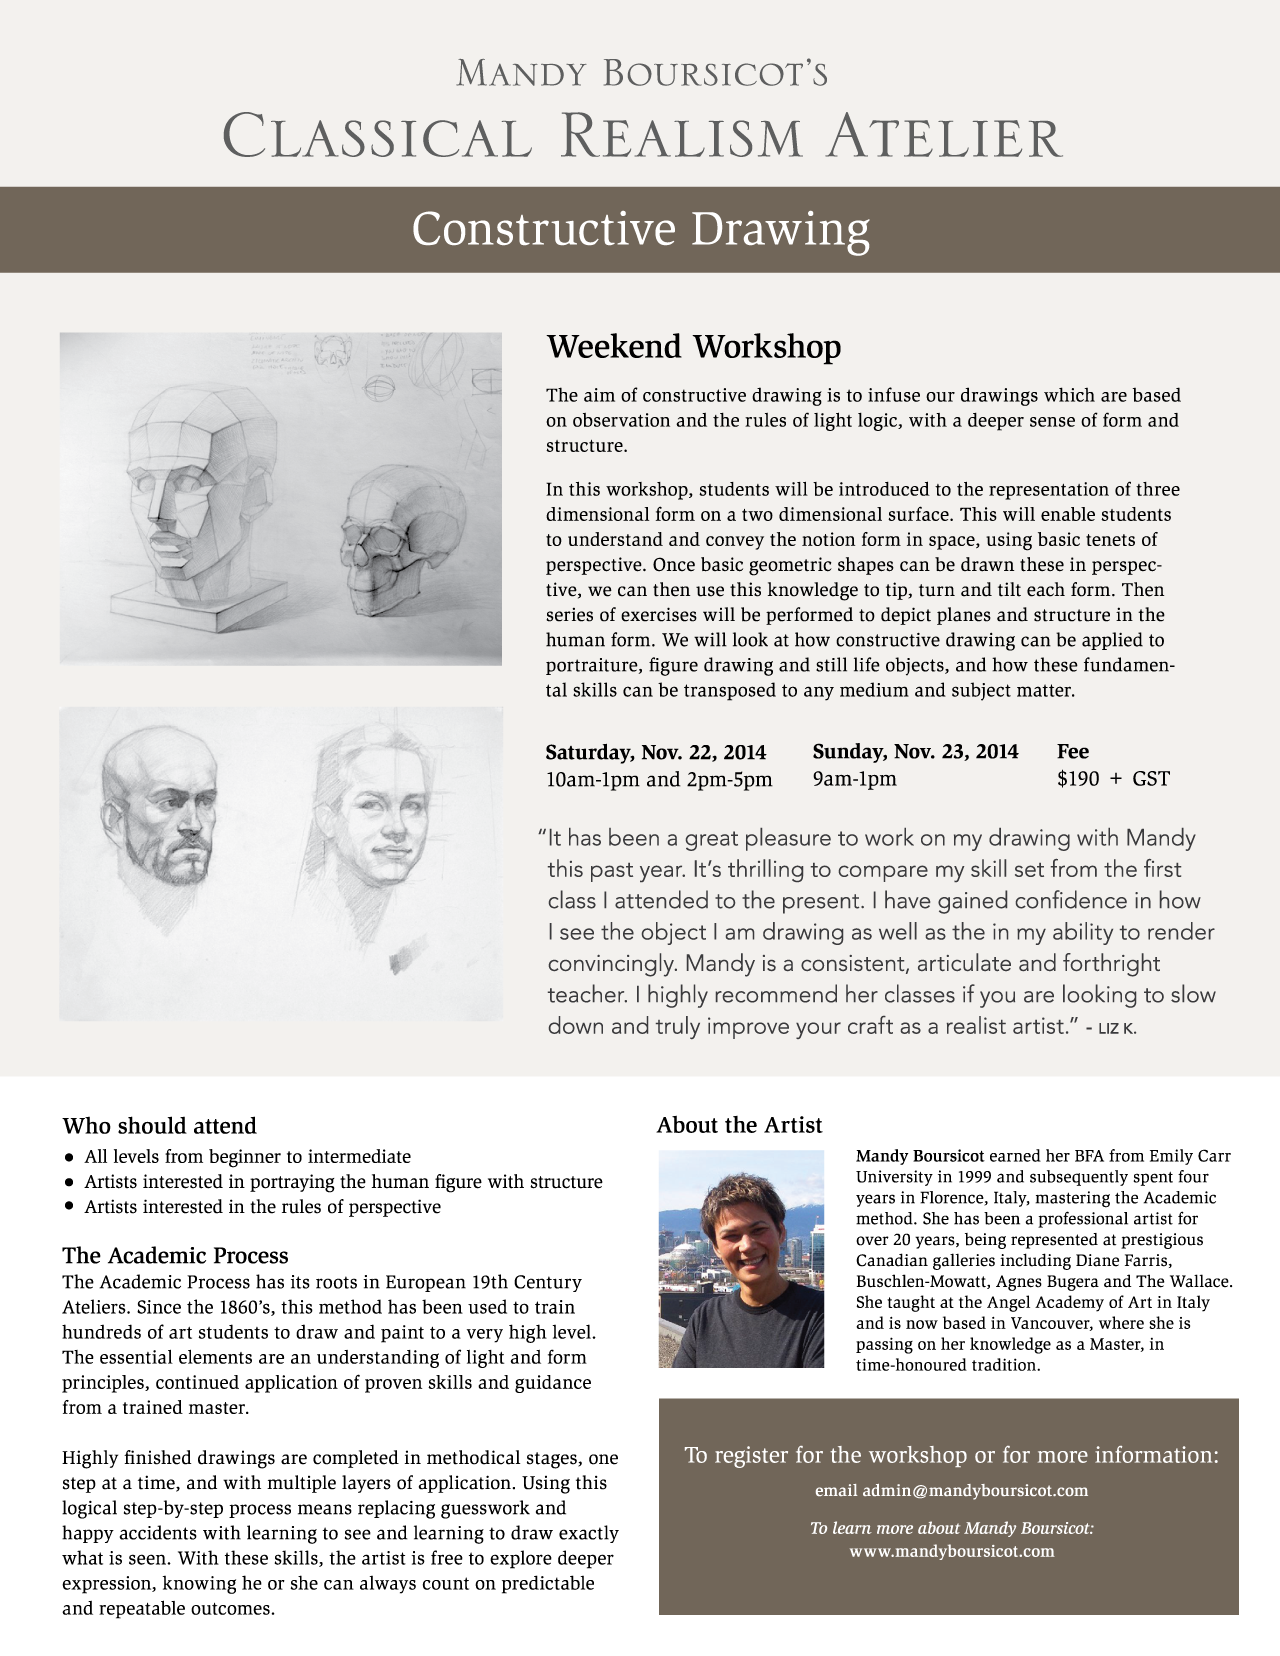 November Weekend Workshop: Constructive Drawing